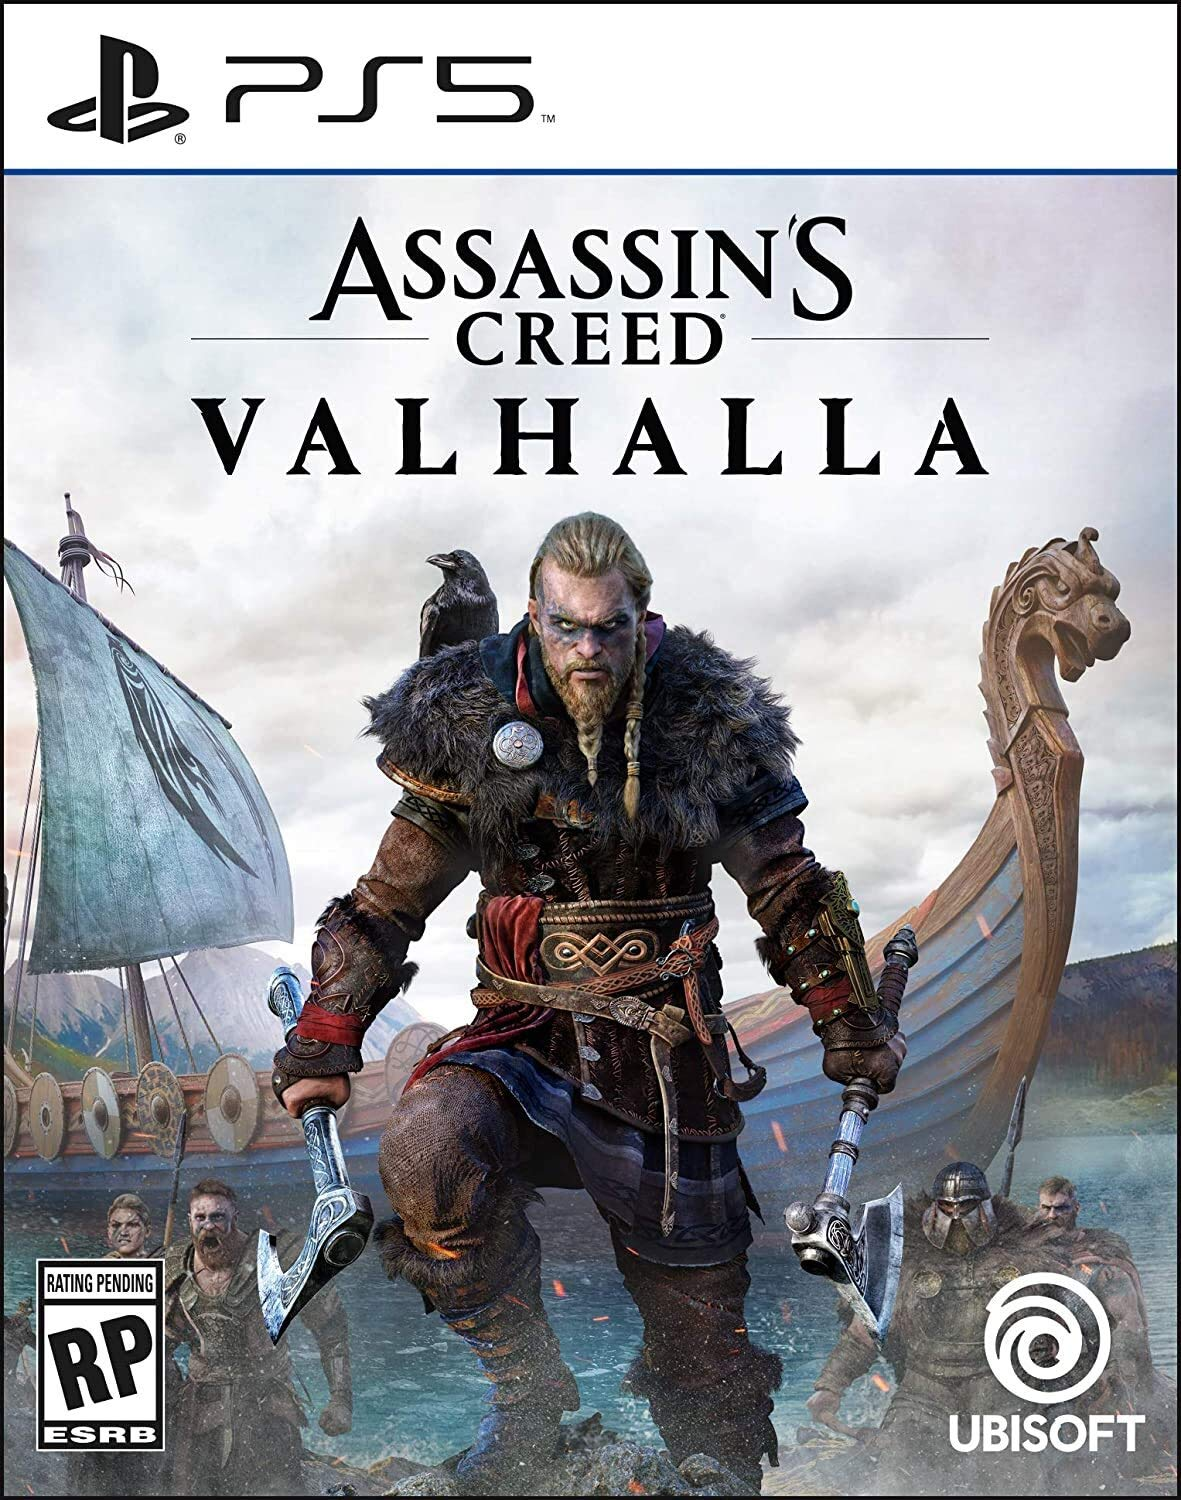 PS5 Assassins Creed Valhalla em Português e Español Playstation